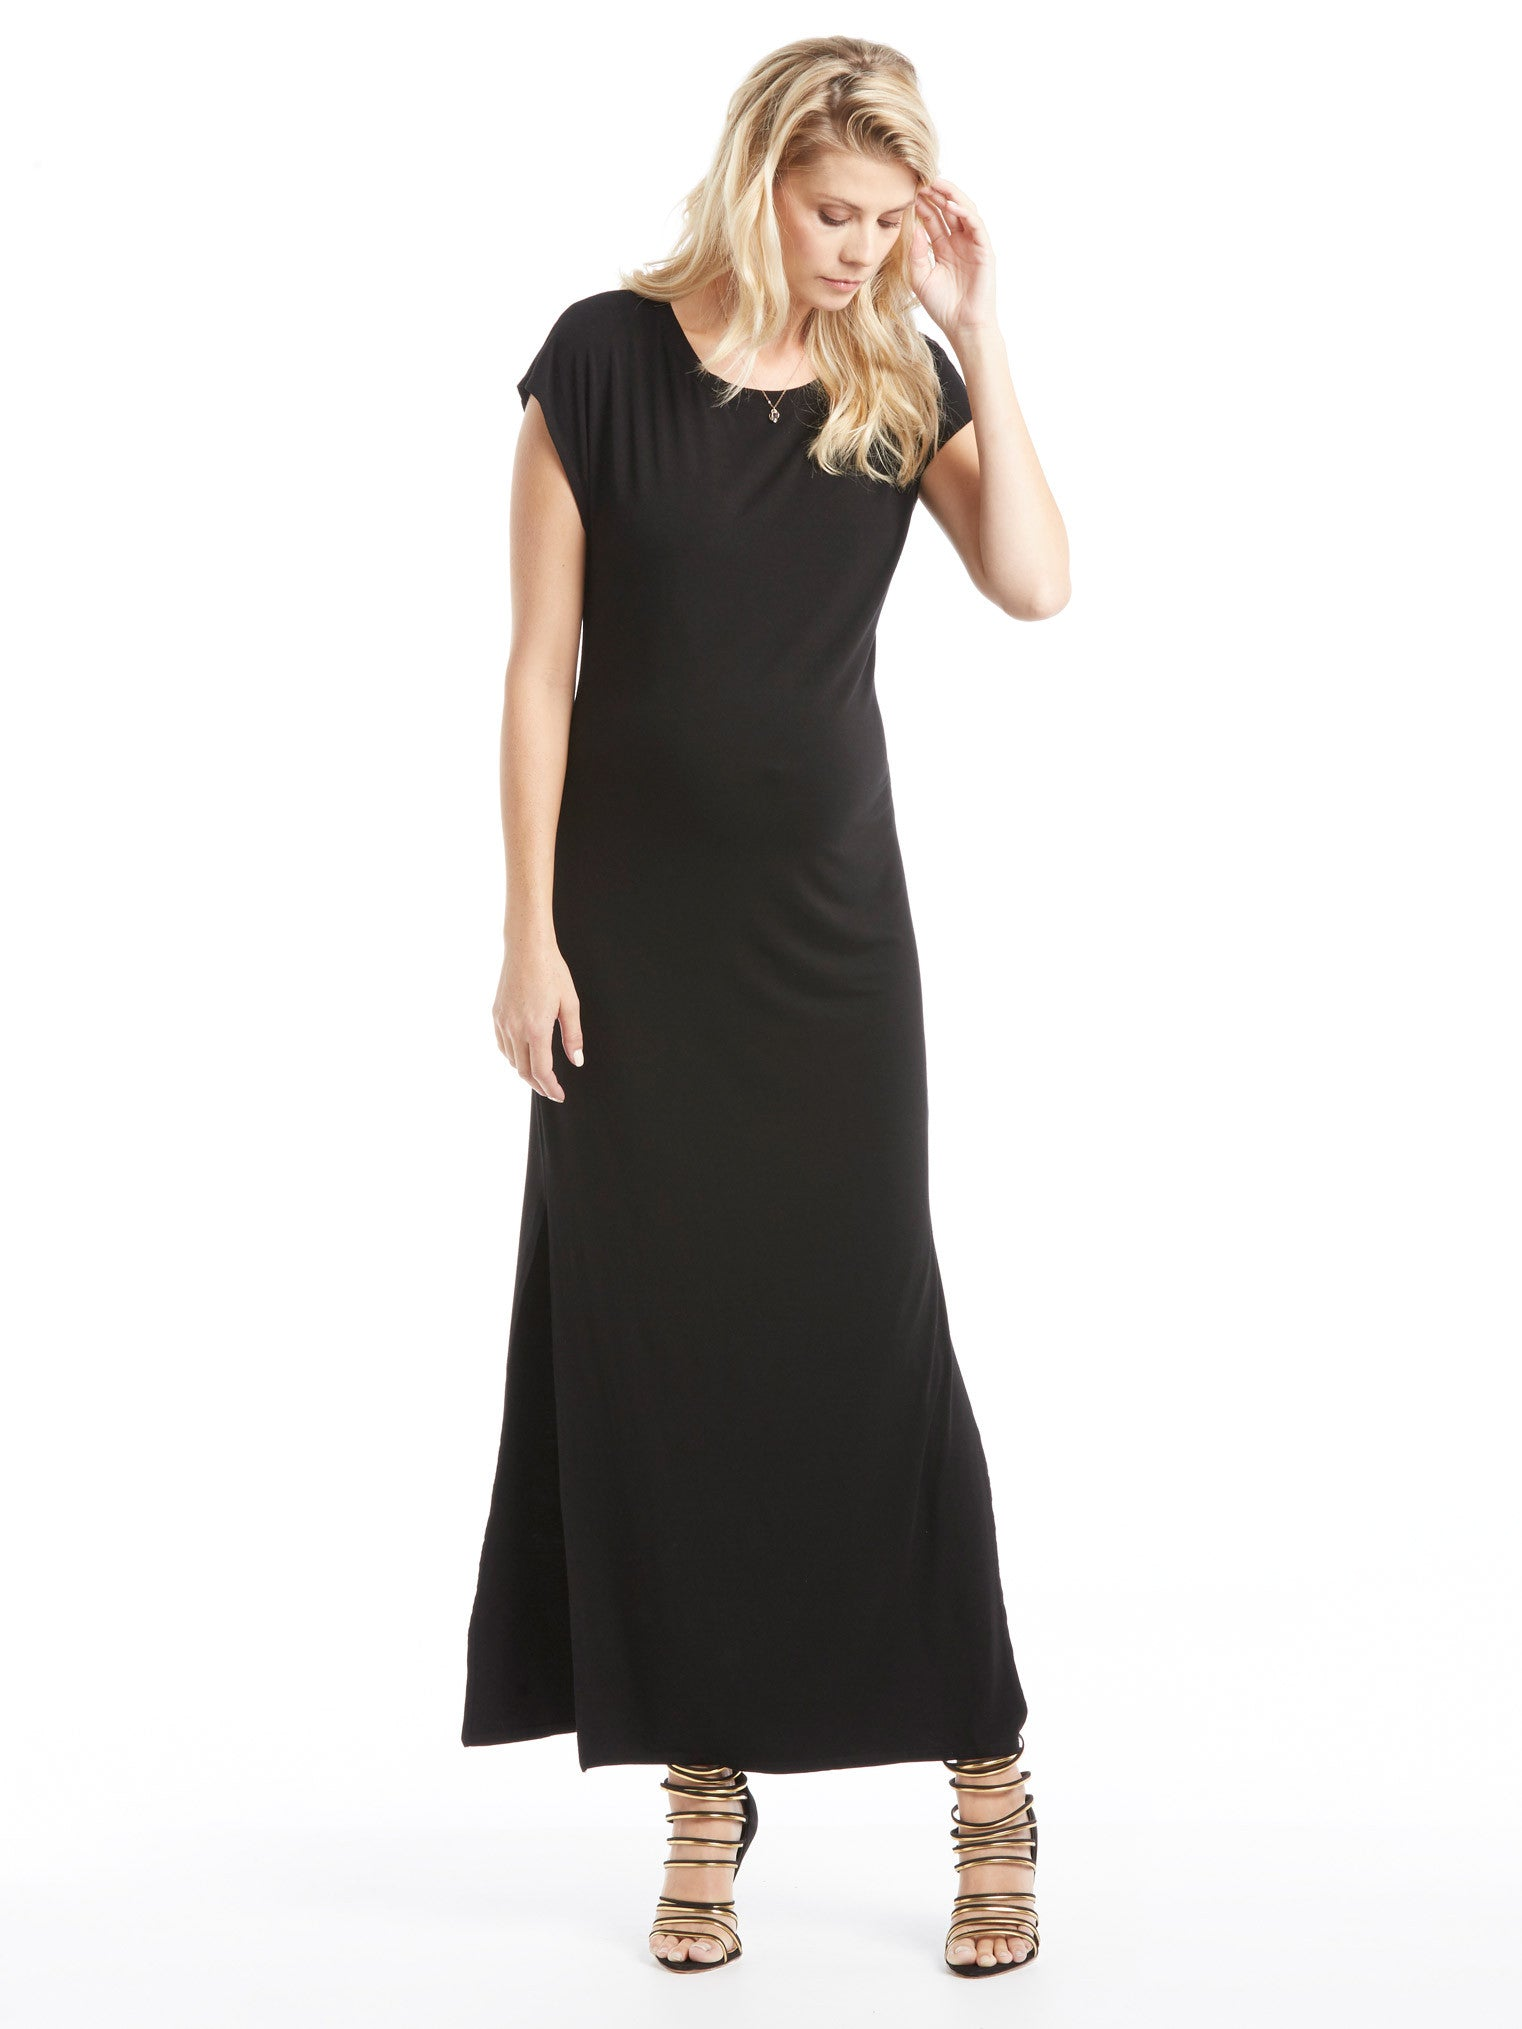 TILDEN | Enza Costa Easy Dress